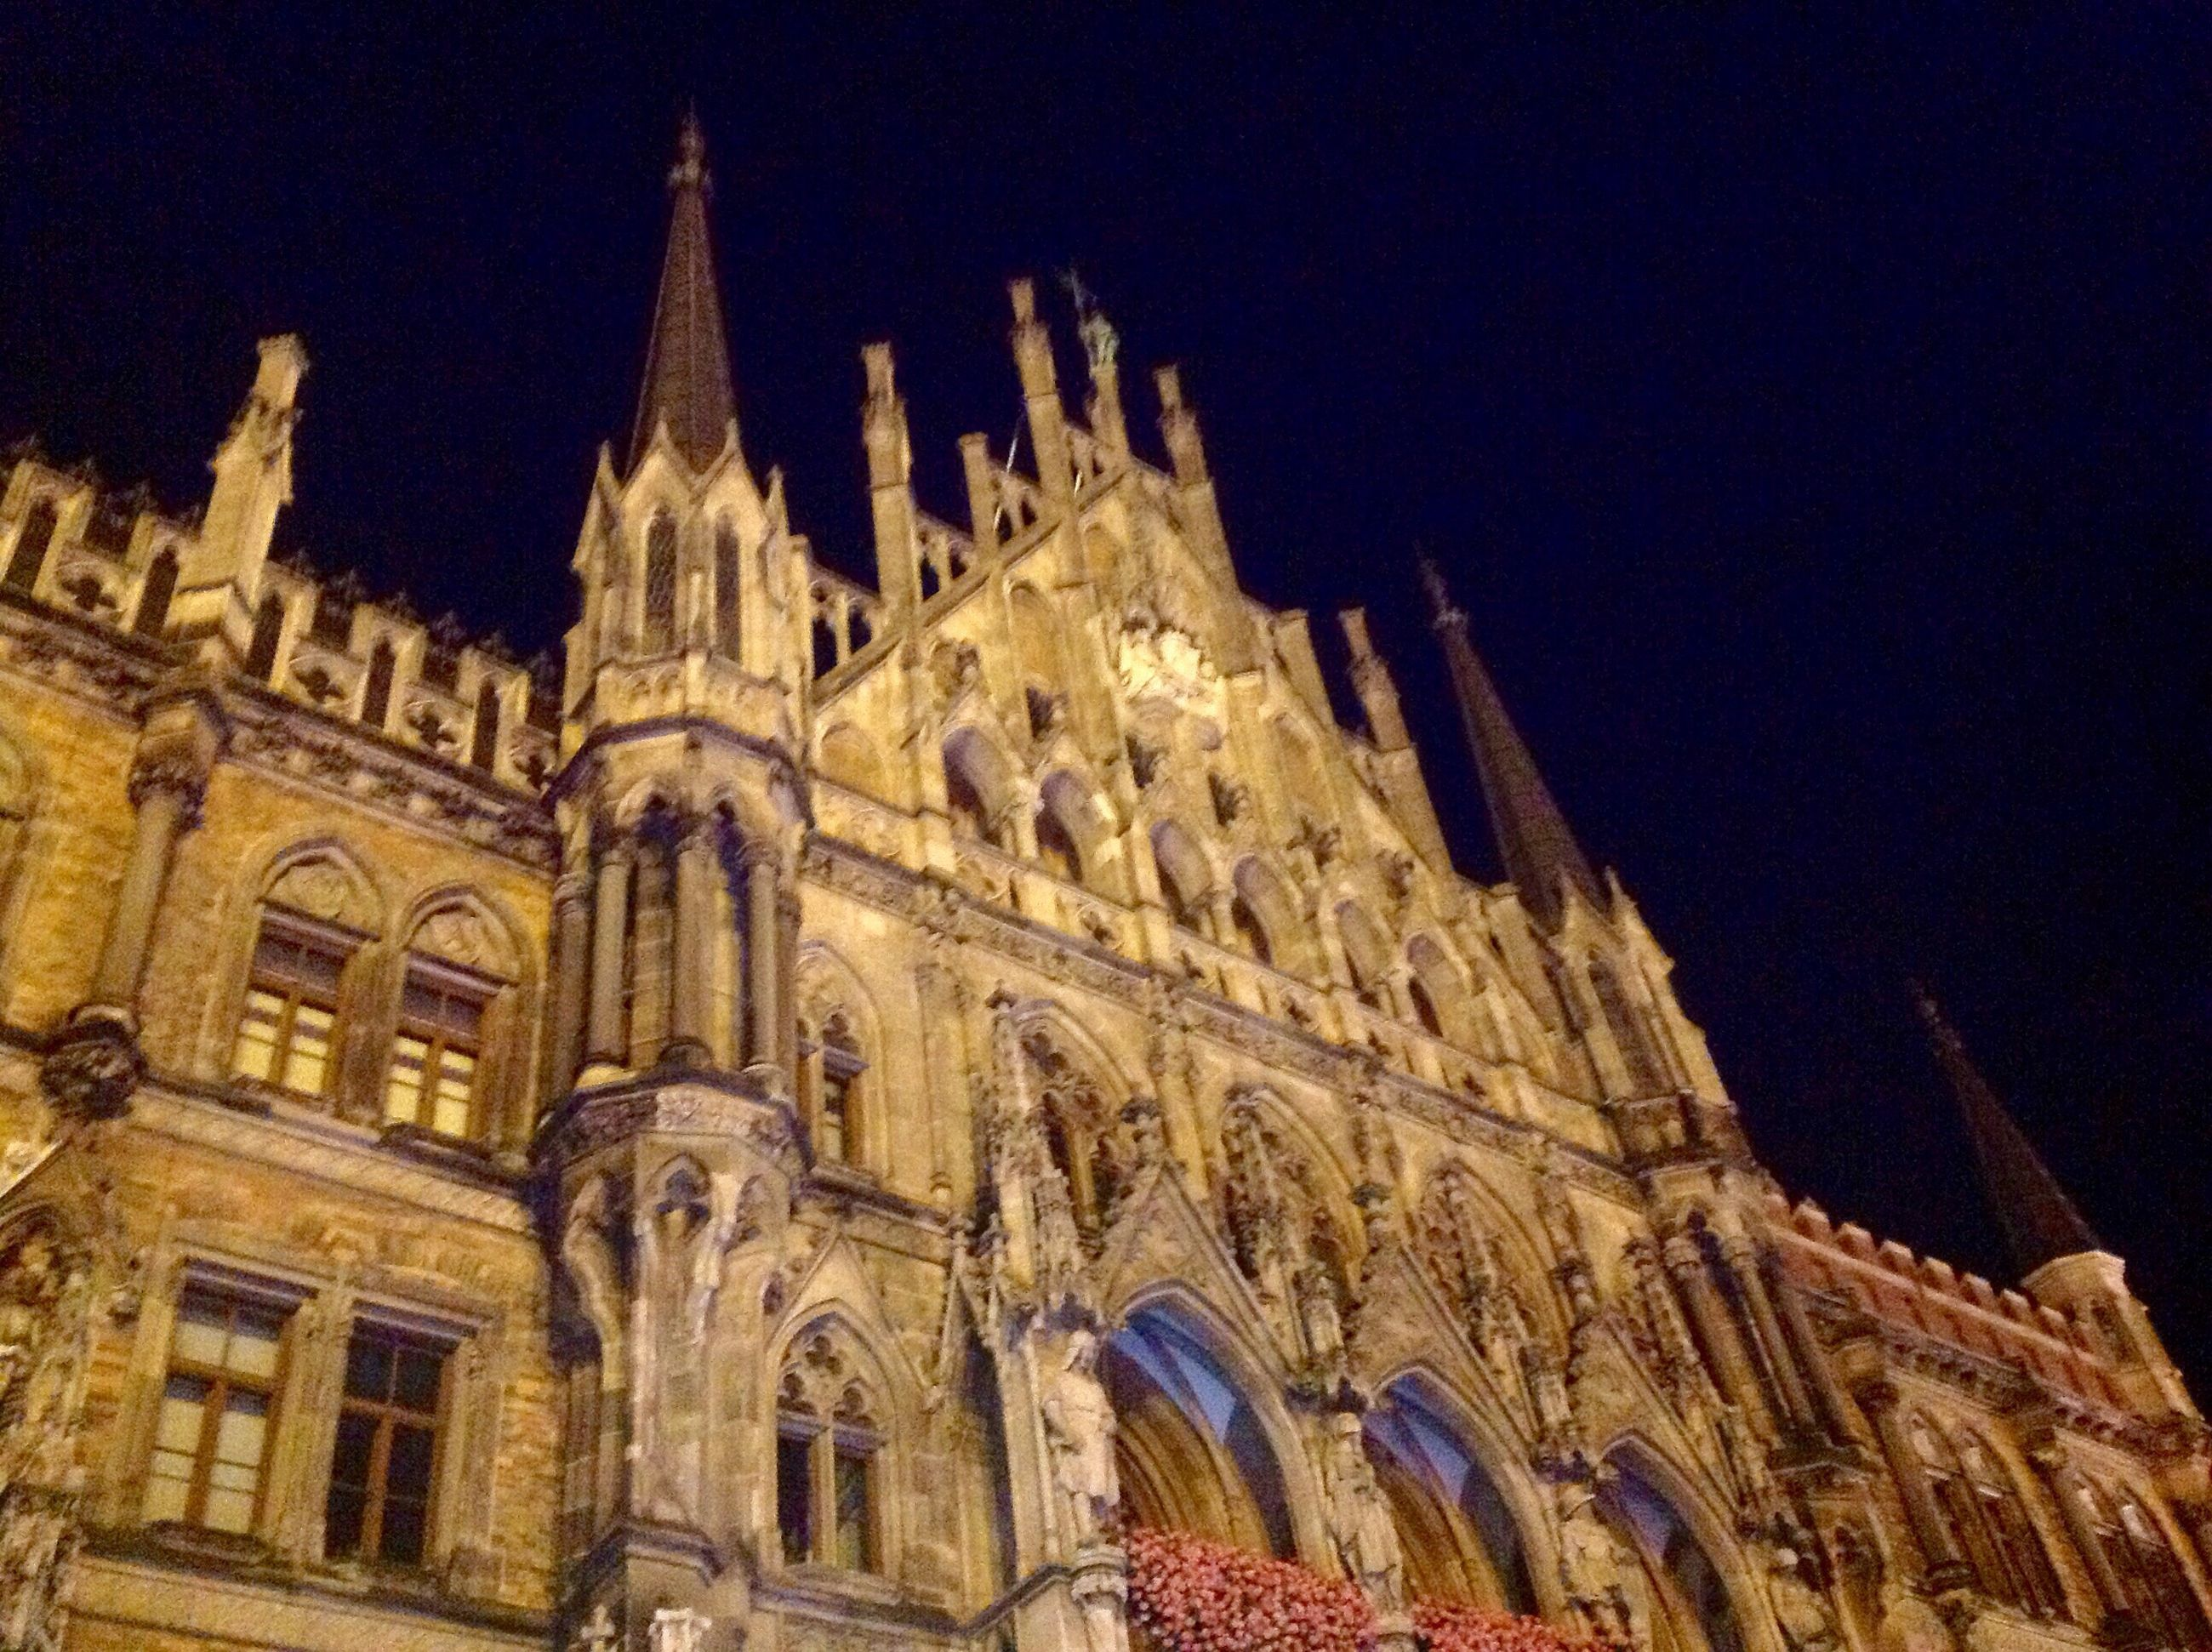 architecture, building exterior, built structure, spirituality, low angle view, religion, place of worship, church, cathedral, clear sky, travel destinations, famous place, history, architectural feature, facade, spire, sky, outdoors, tourism, steeple, milan cathedral, gothic style, majestic, spanish culture, medieval